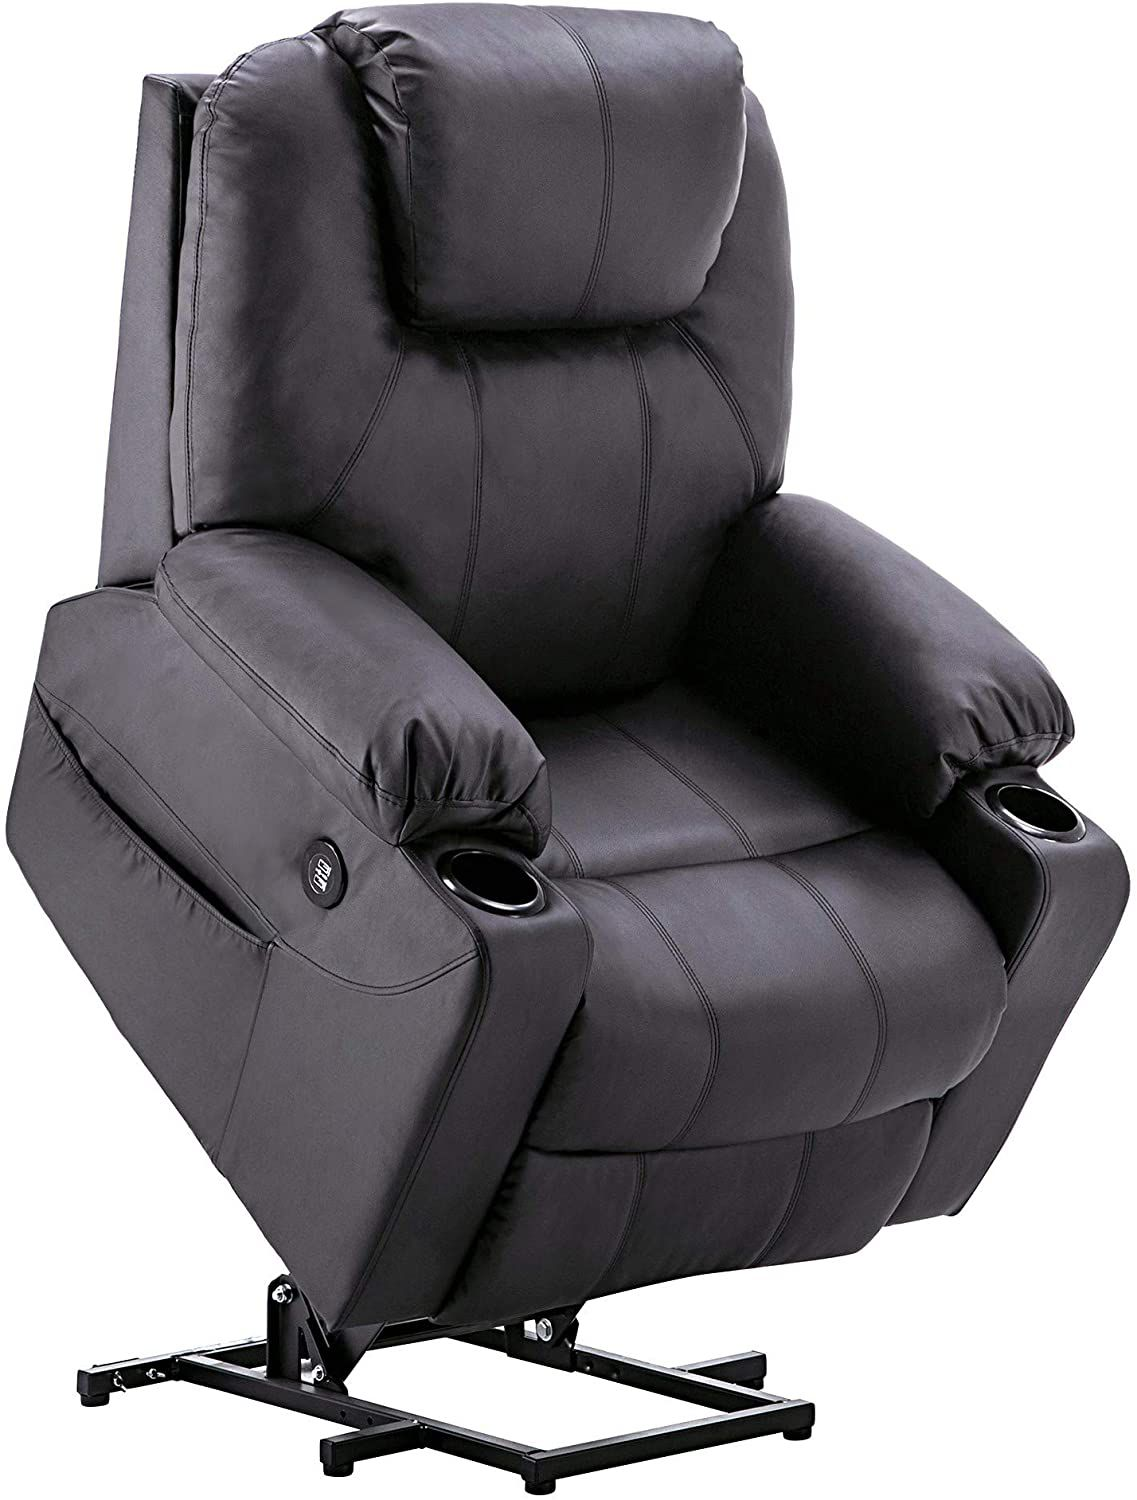 Mcombo-Electric-Power-Lift-Recliner